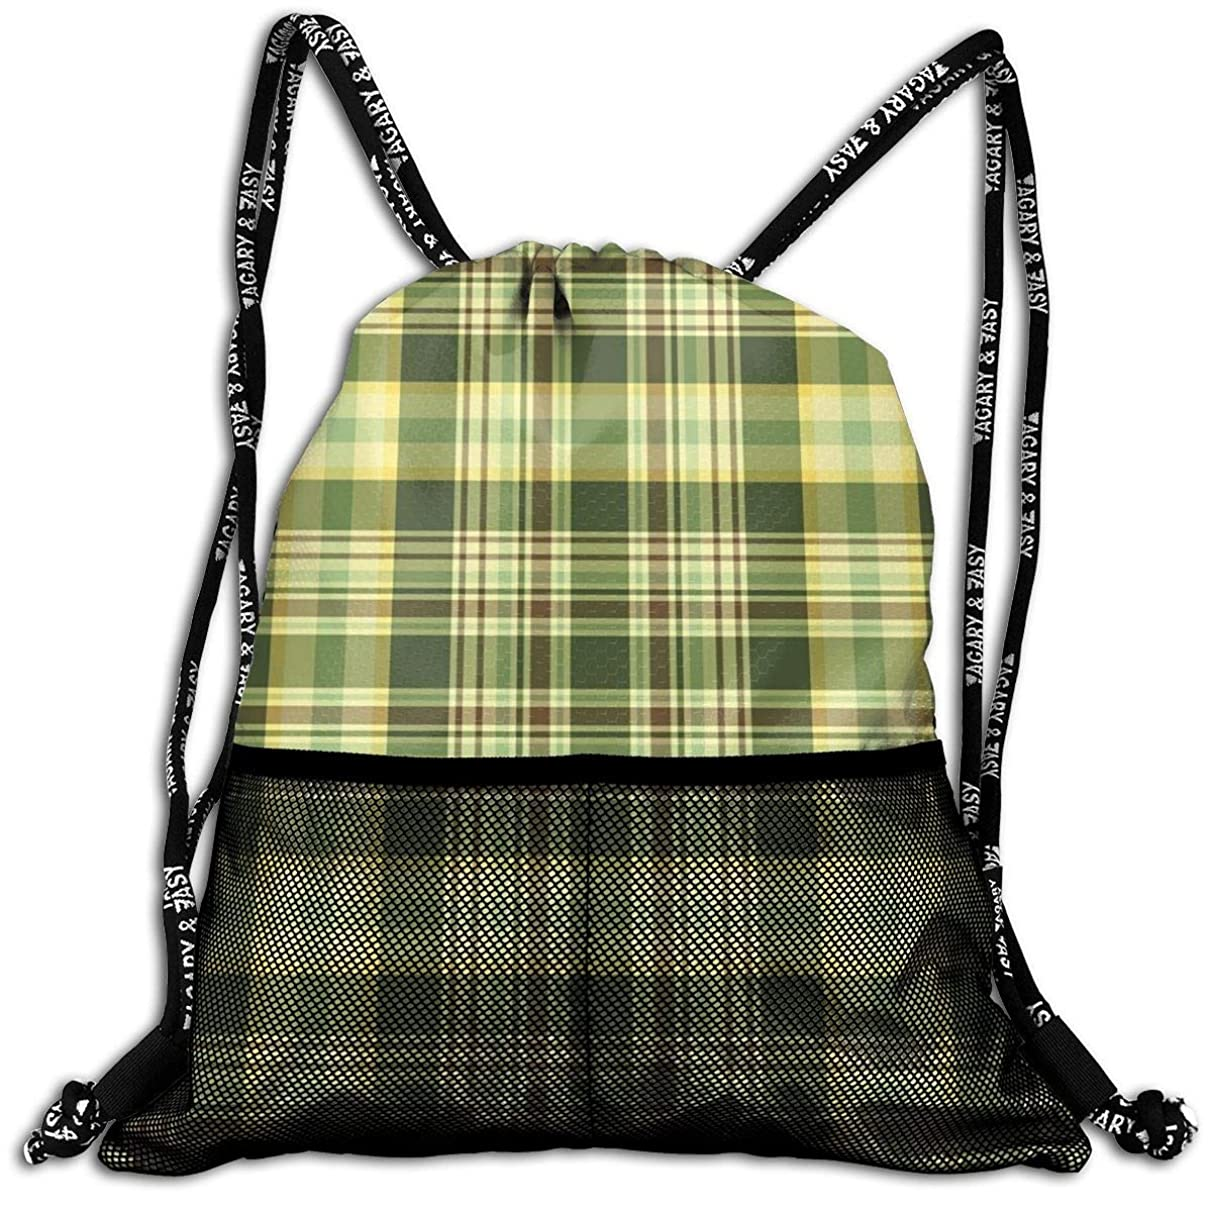 Drawstring Backpacks Bags,Quilt Pattern Traditional Scottish Design Checkered Geometrical,5 Liter Capacity,Adjustable